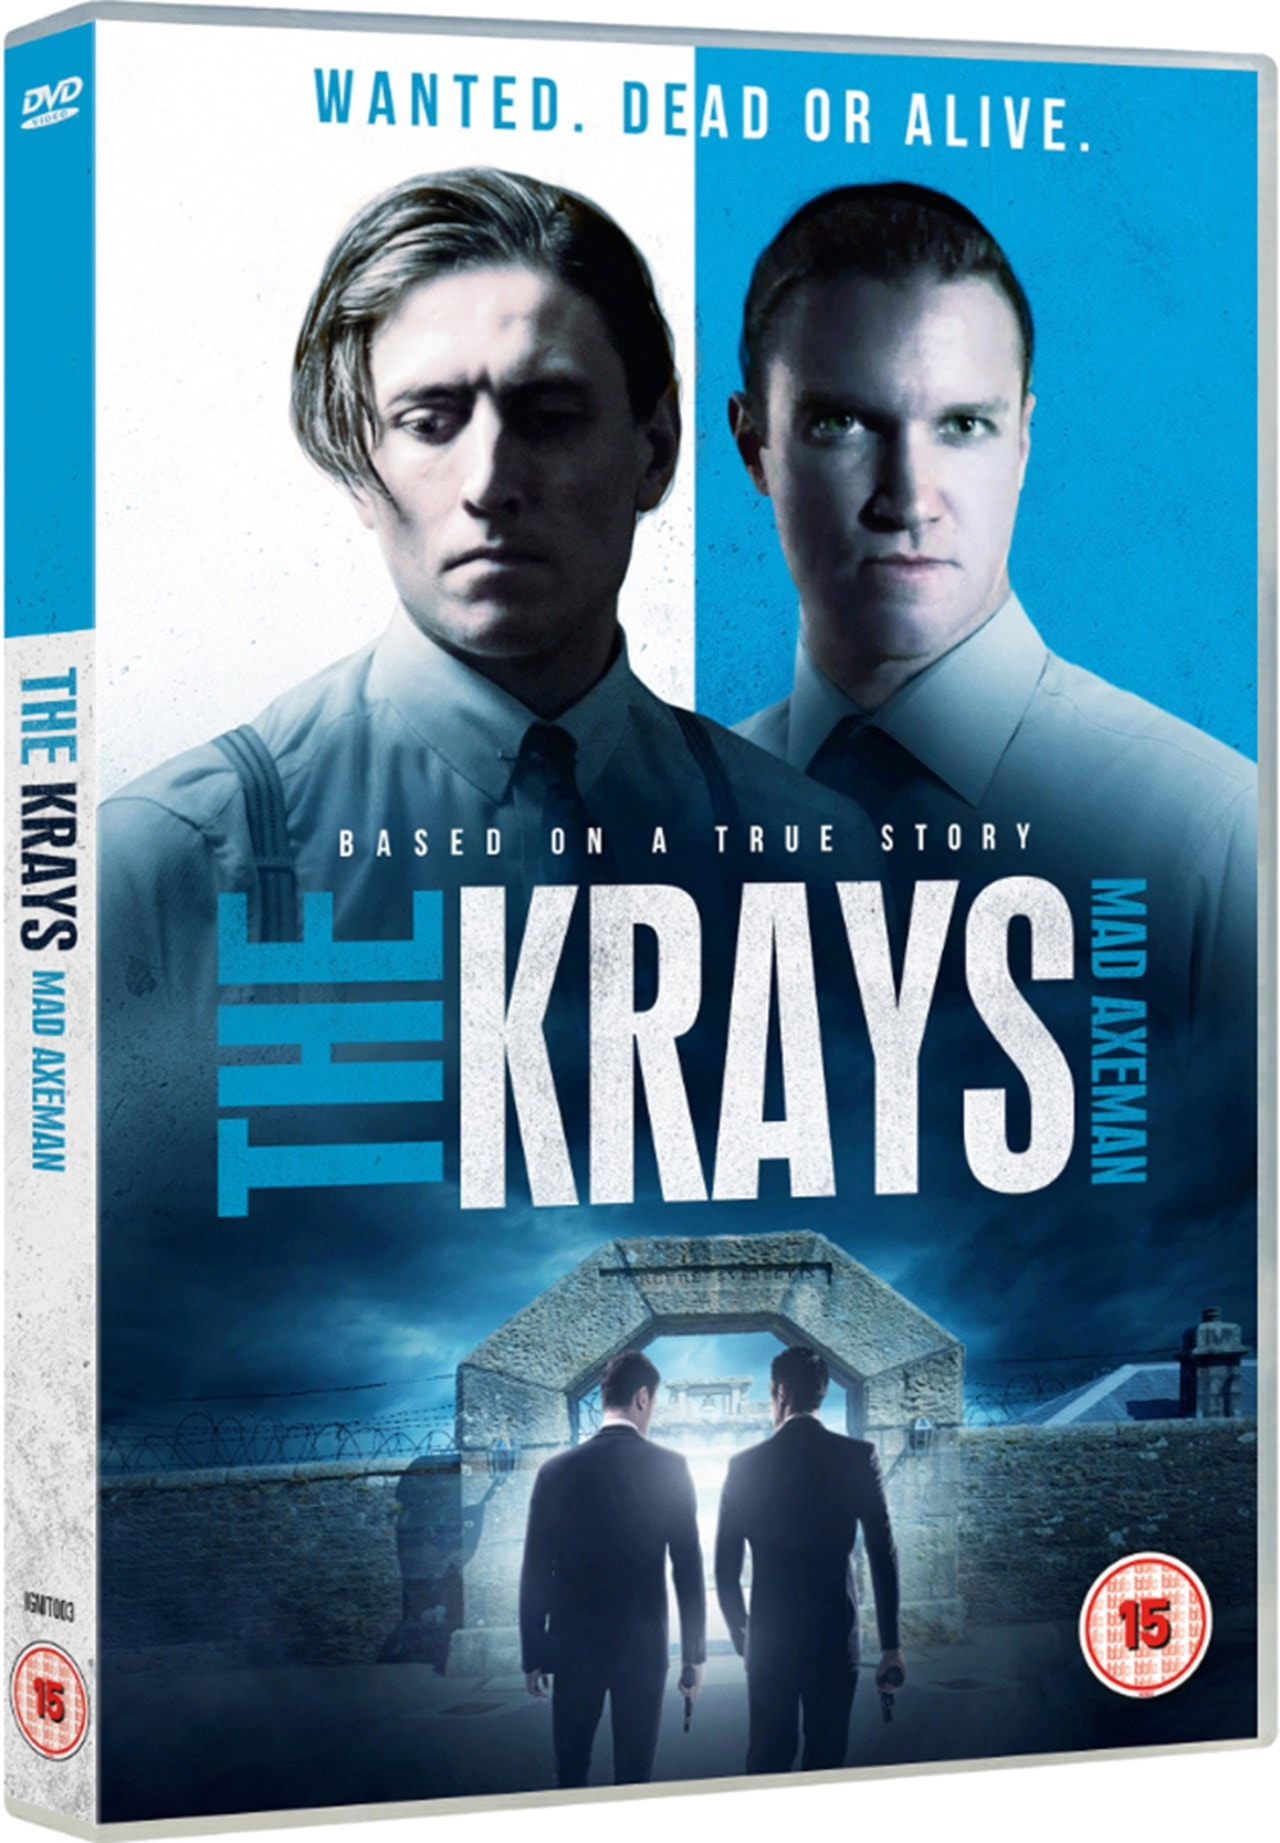 The Krays: Mad Axeman - 2